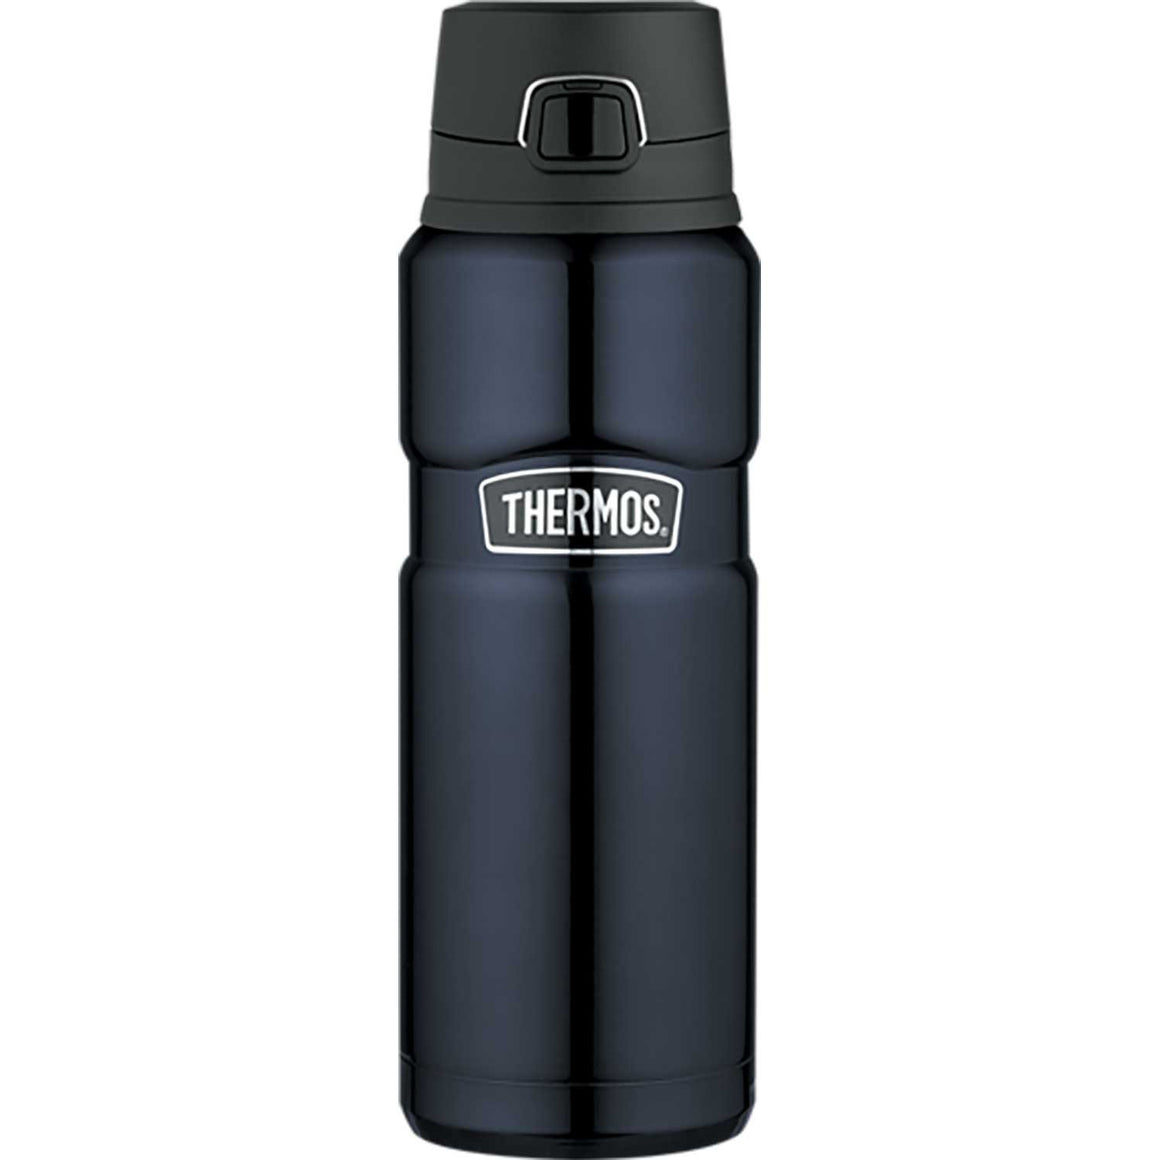 Thermos Stainless Steel King Vacuum Insulated Bottle 710ml Midnight Blue - stuff-n-things